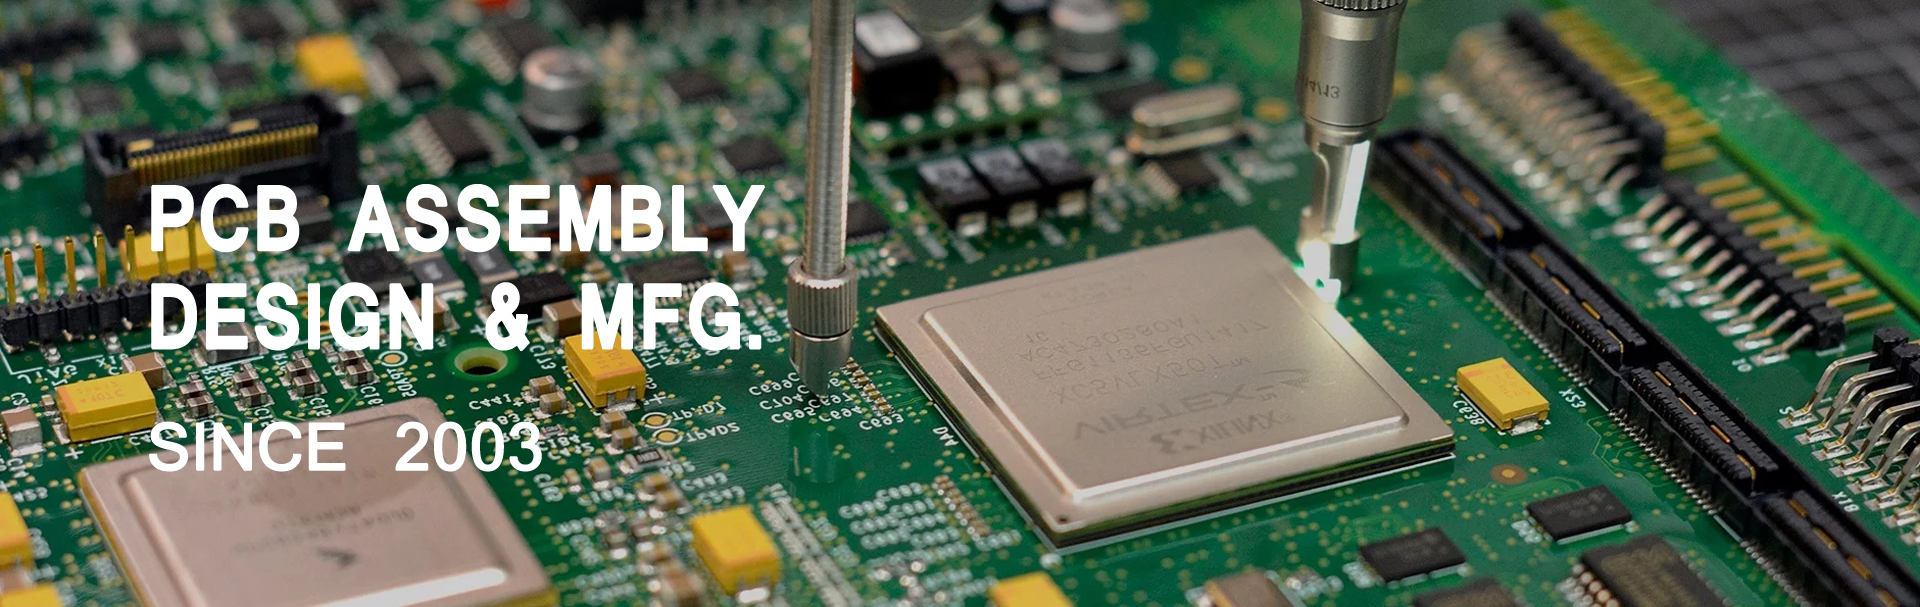 Professionele Shenzhen PCB Assembly Fabrikant PCB Software 100% Getest Ontwikkeling Geluidskaart PCB Vergadering